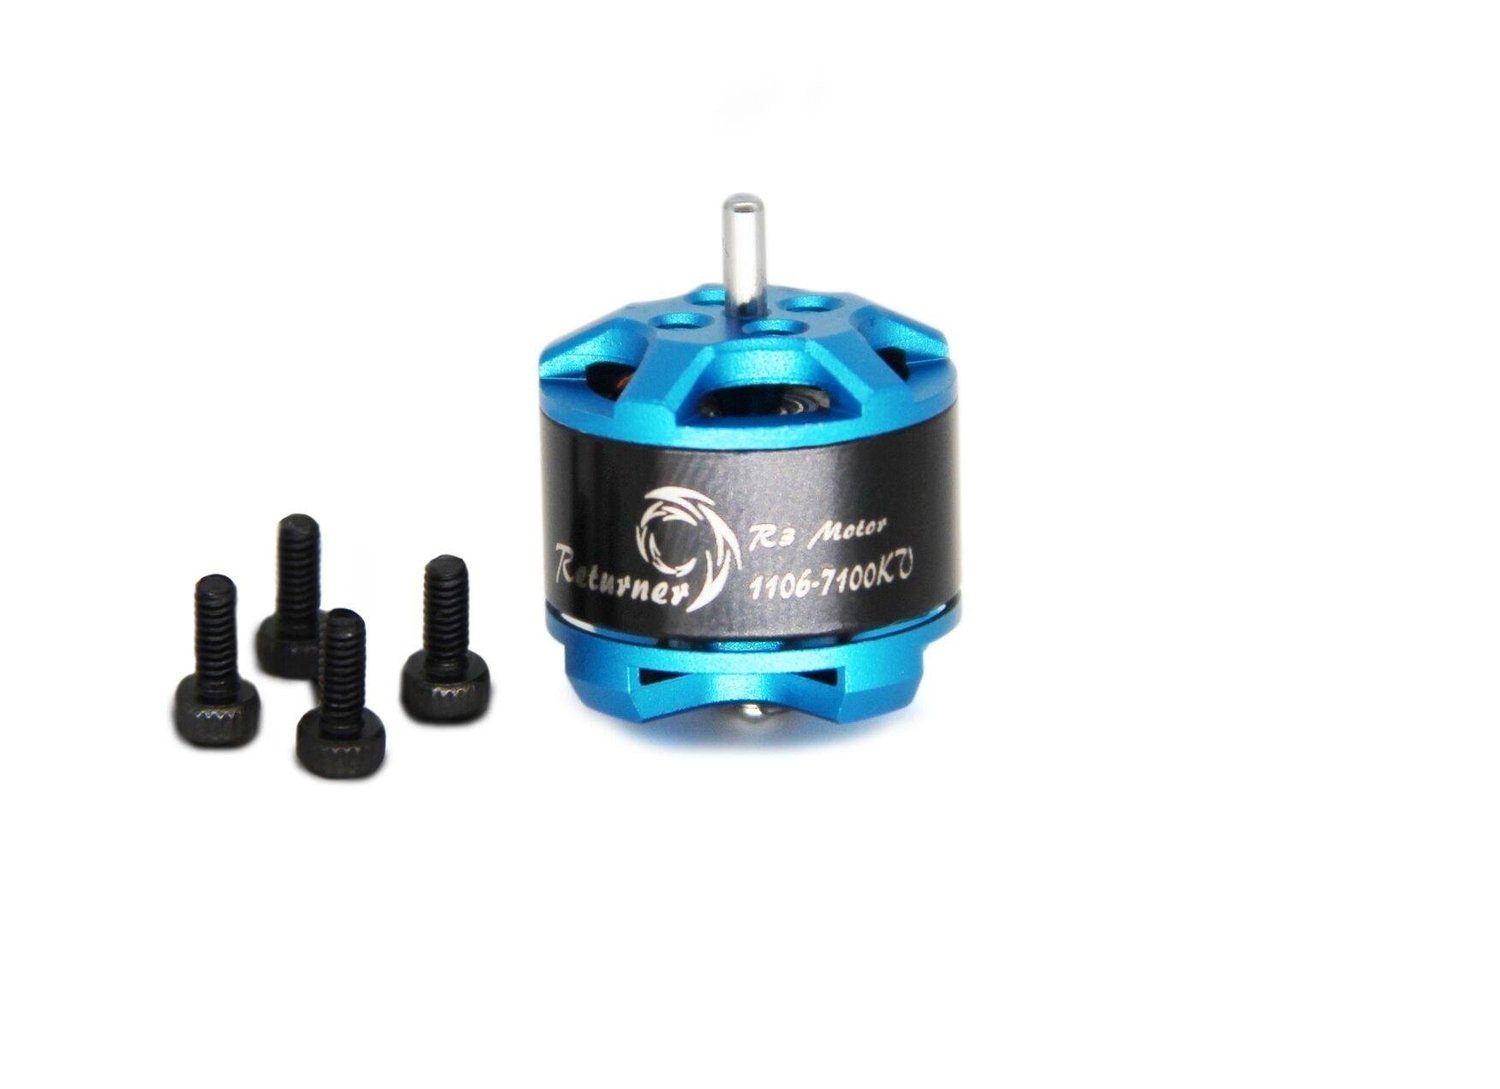 Brother Hobby R3 1106 5100kv Micro Motors